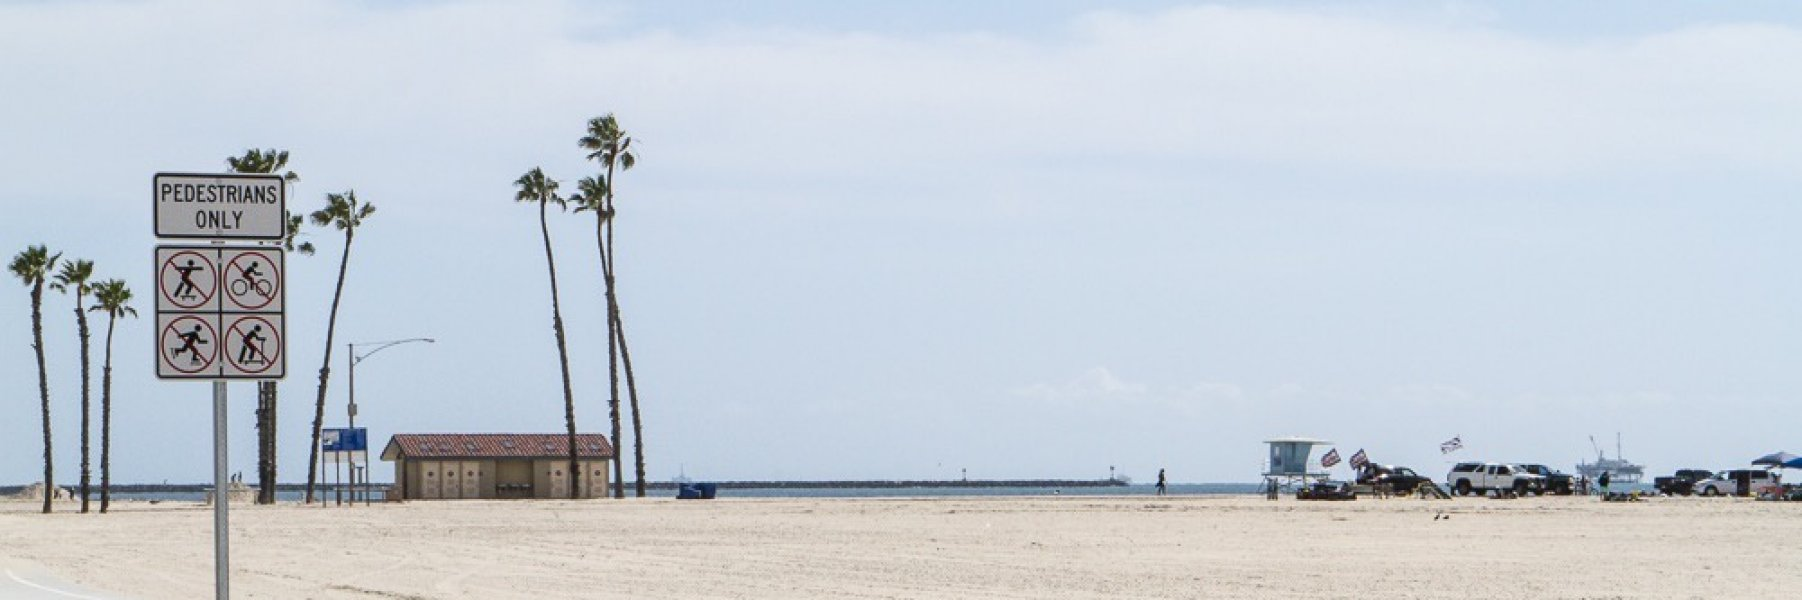 Belmont Shore is a community of homes in Long Beach California